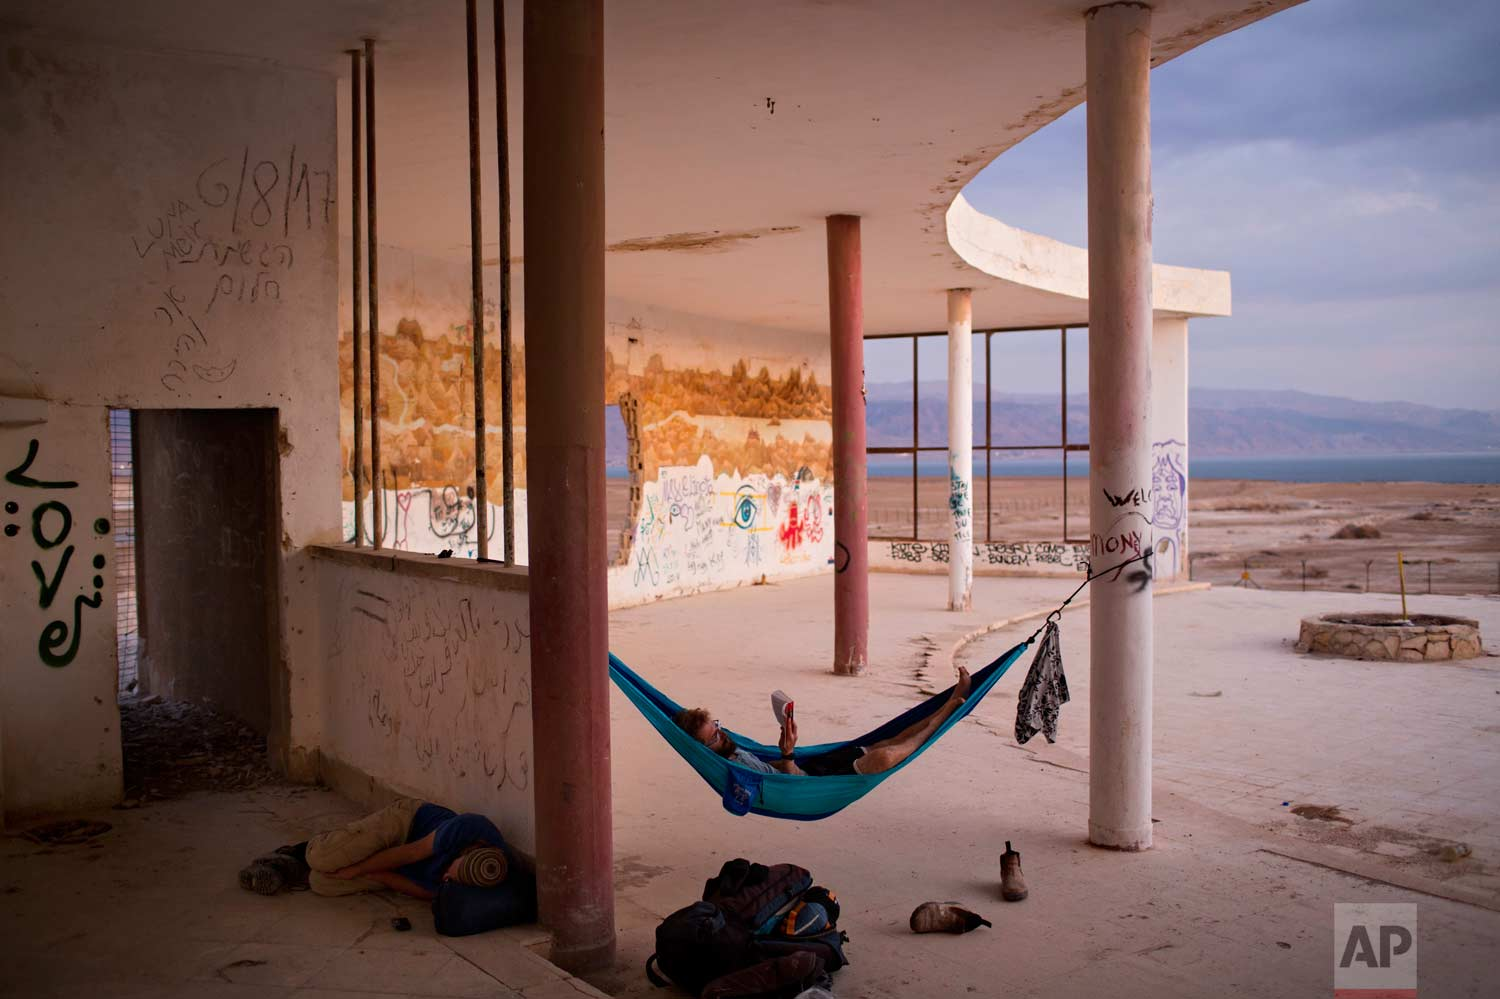 In this Oct. 16, 2017 photo, Israelis camp out in an abandoned restaurant overlooking the Dead Sea near Kibbutz Kalya. (AP Photo/Oded Balilty)